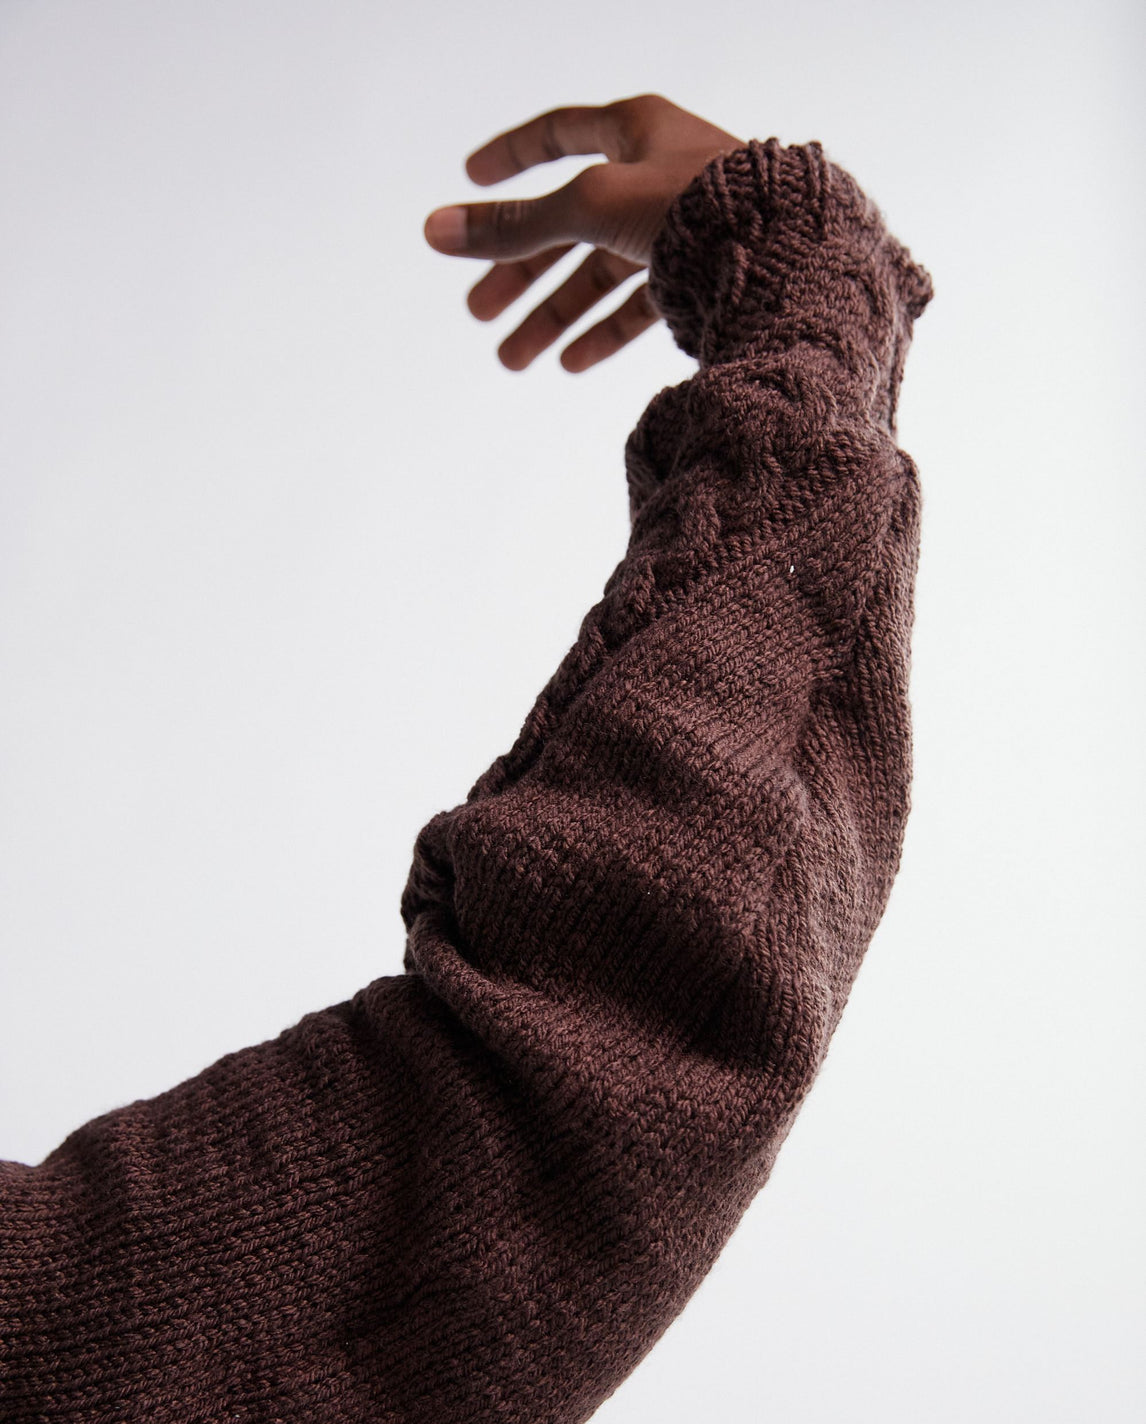 Basket Hand Knitted Sweater - Brown UNISEX CAMERON WILLIAMS